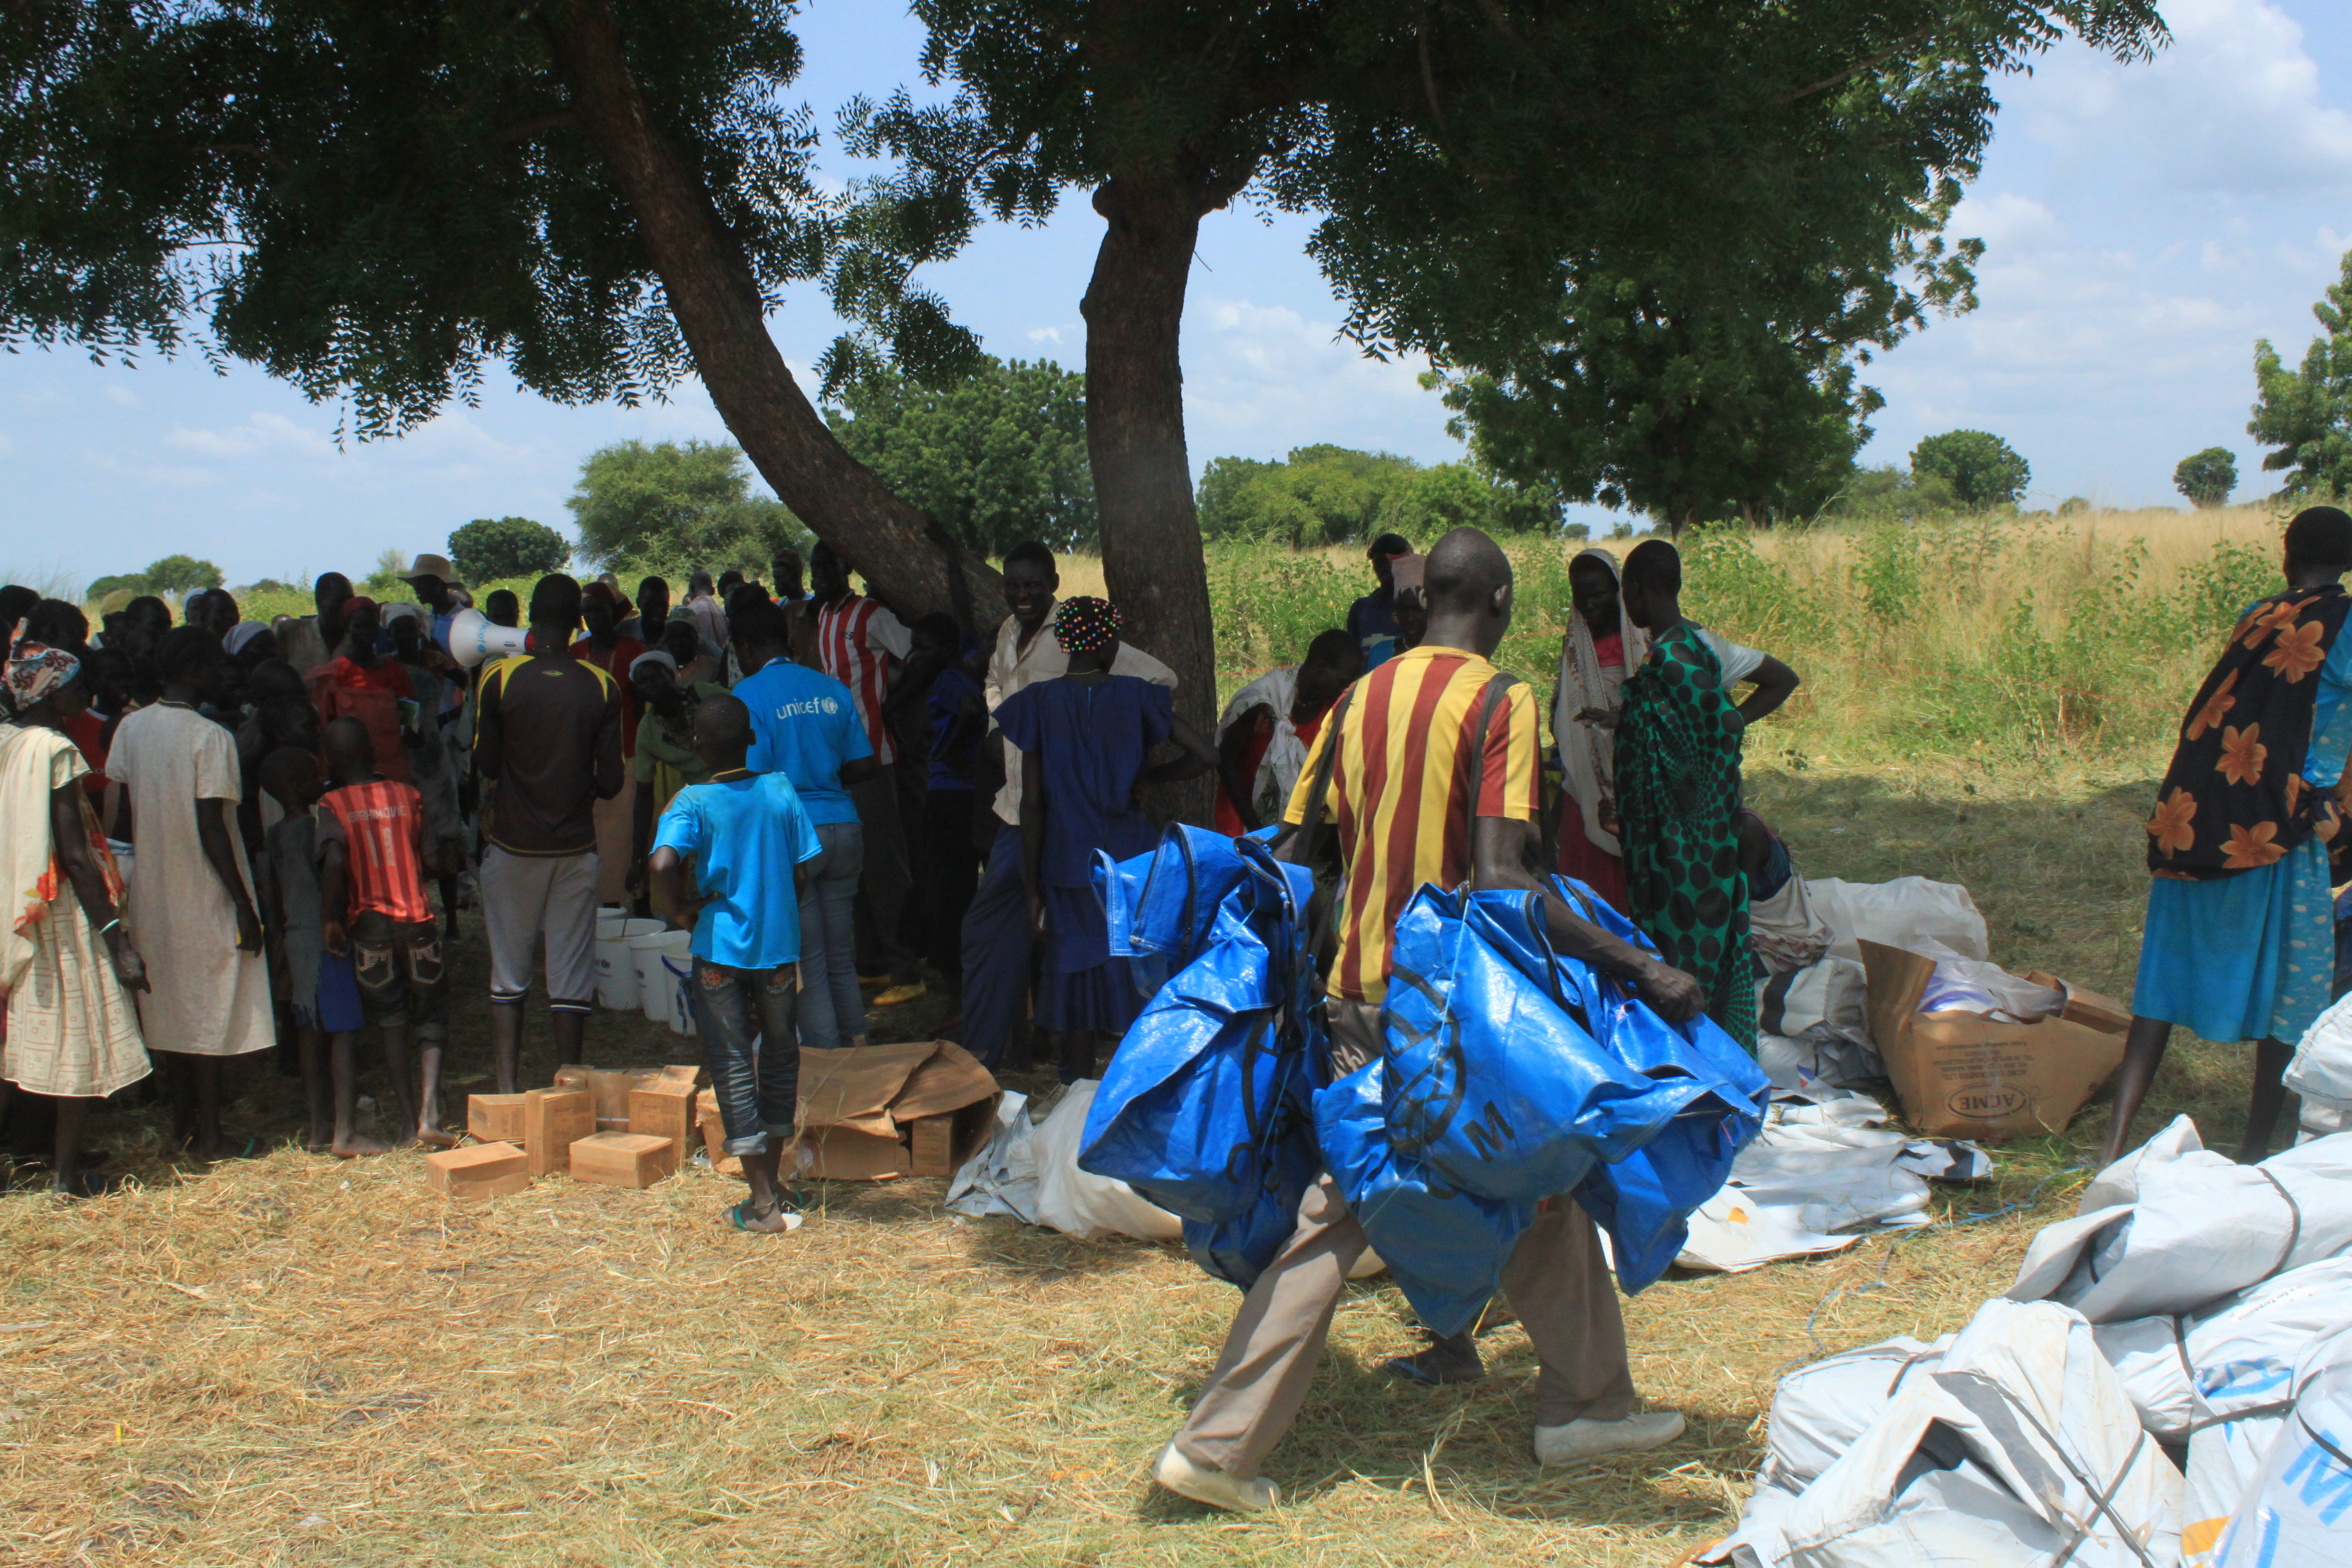 People in the town of Koch, in South Sudan's Unity state, are given tents for temporary shelter on Sept. 25, 2015, when the World Food Program and UNICEF resumed aid deliveries to the area after a four-month break.